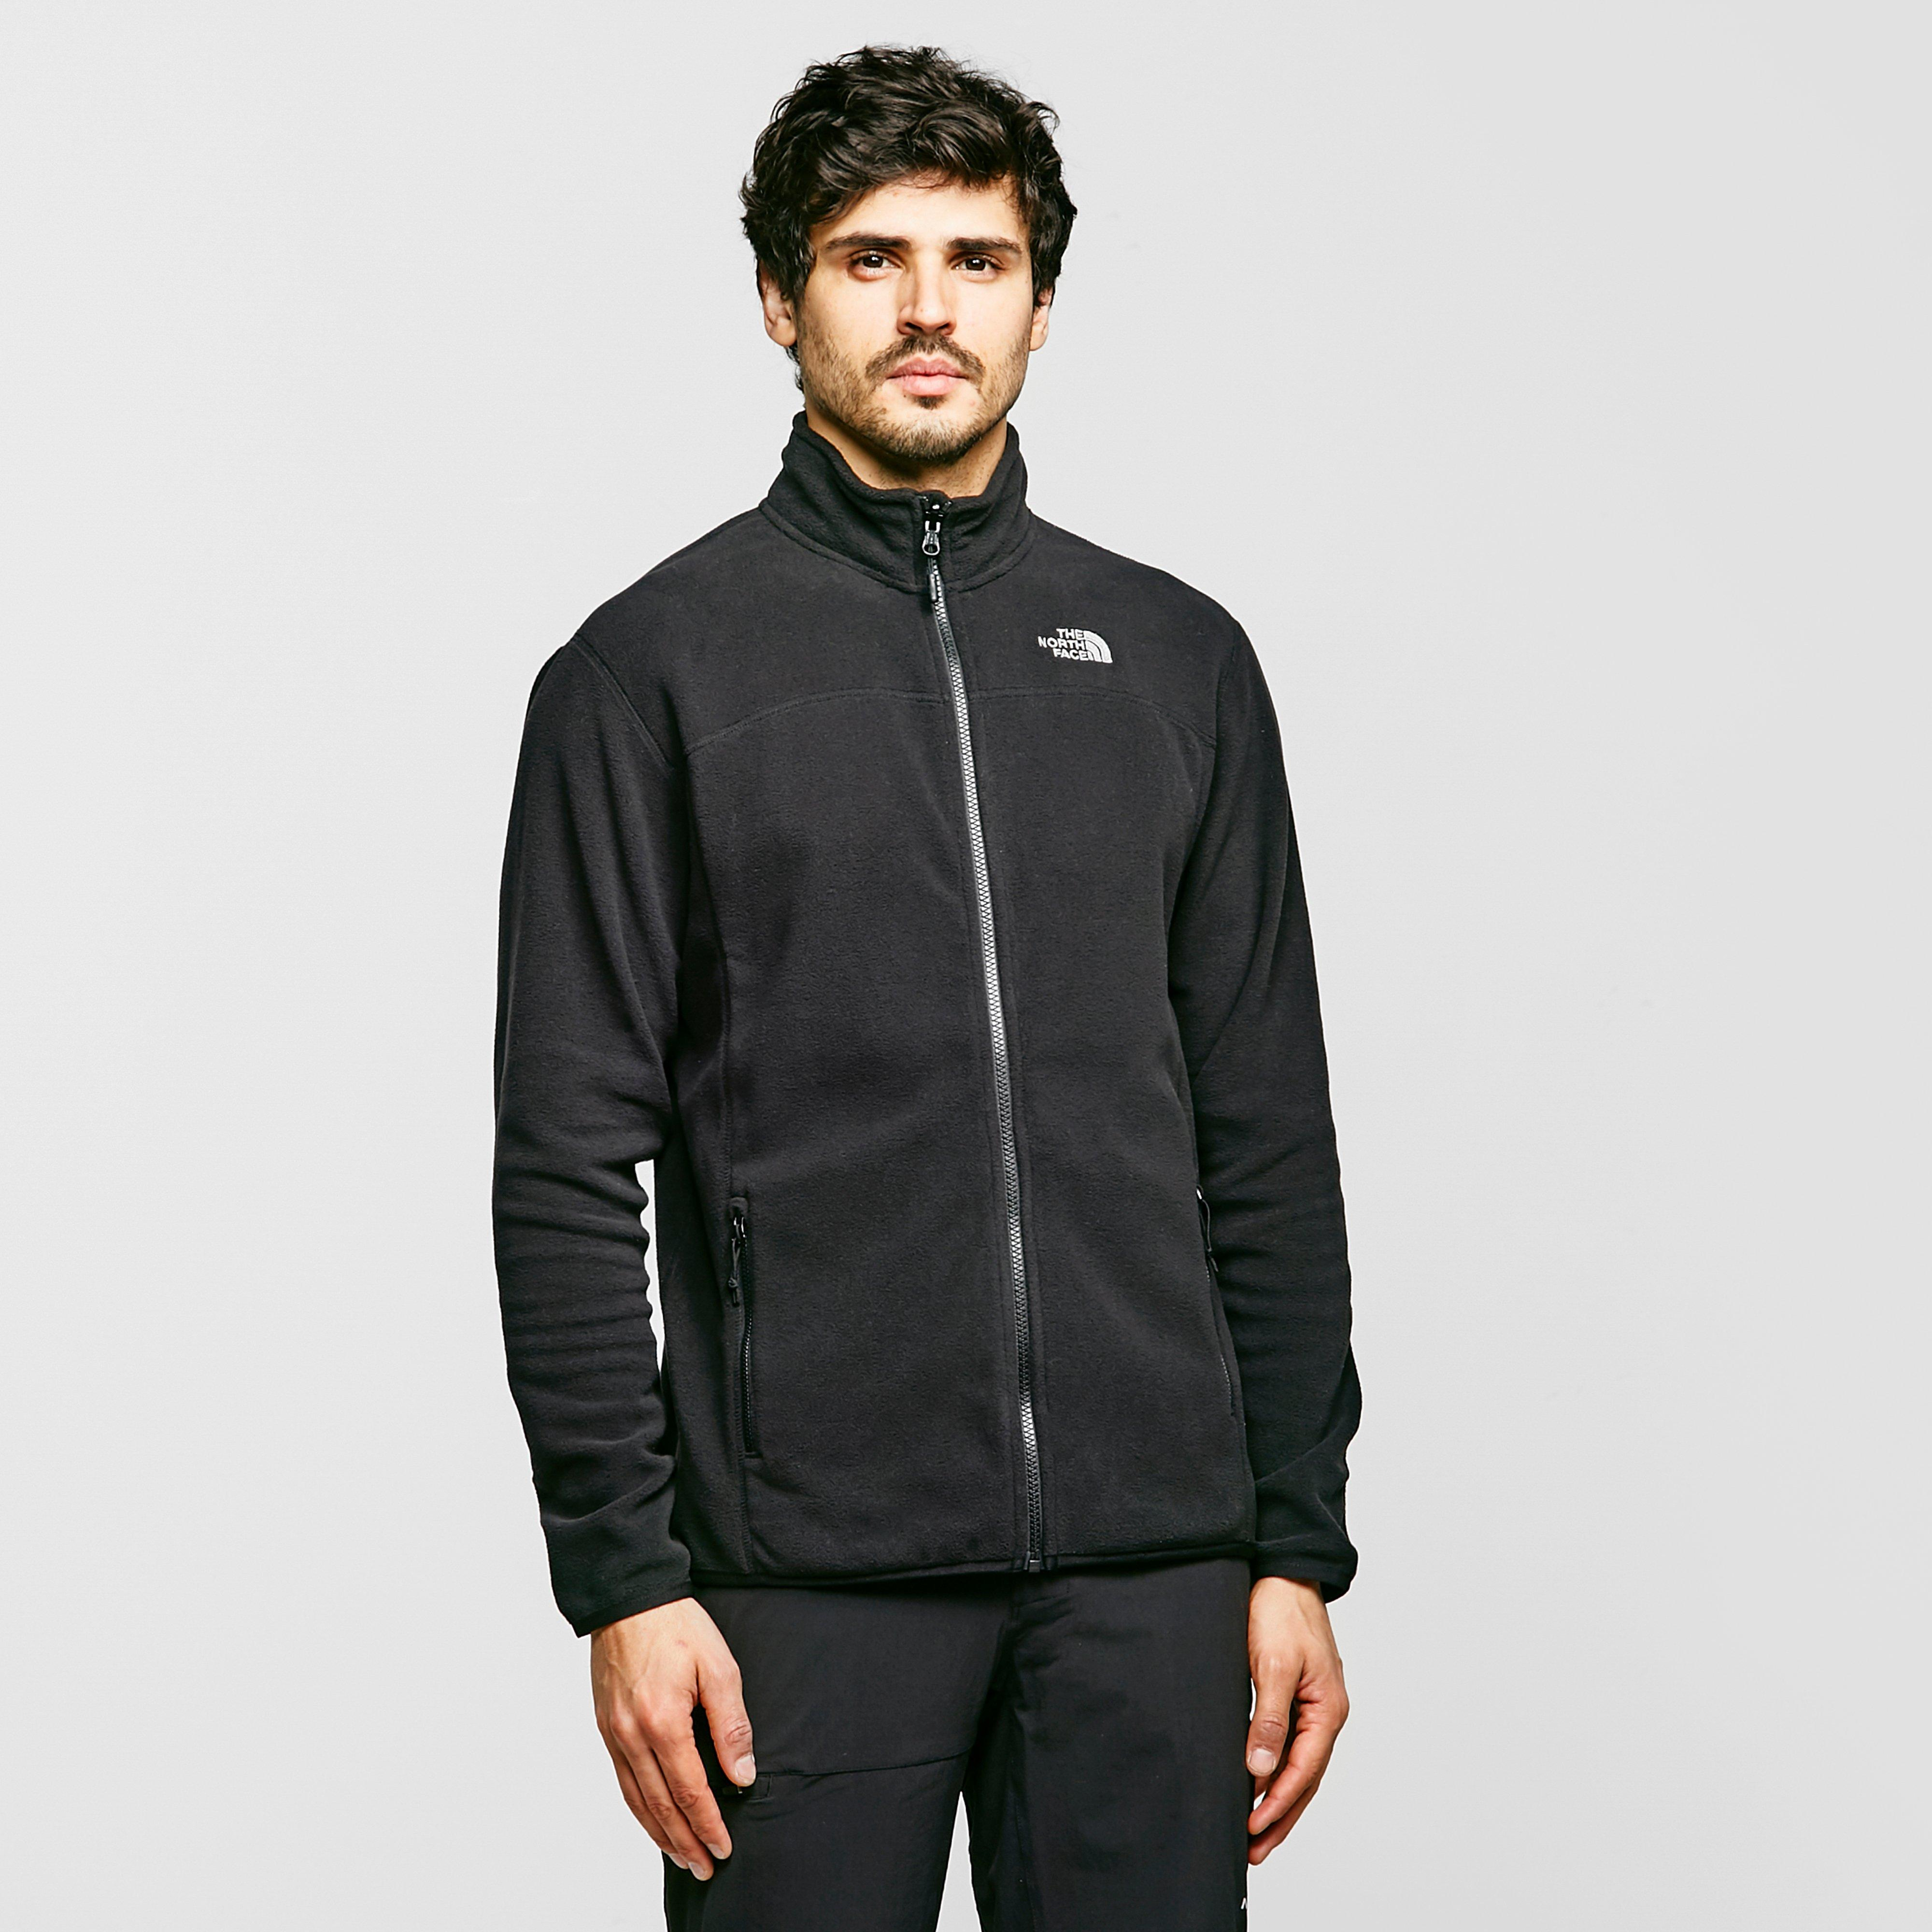 Mens Fleece Jackets & Jumpers | Millets